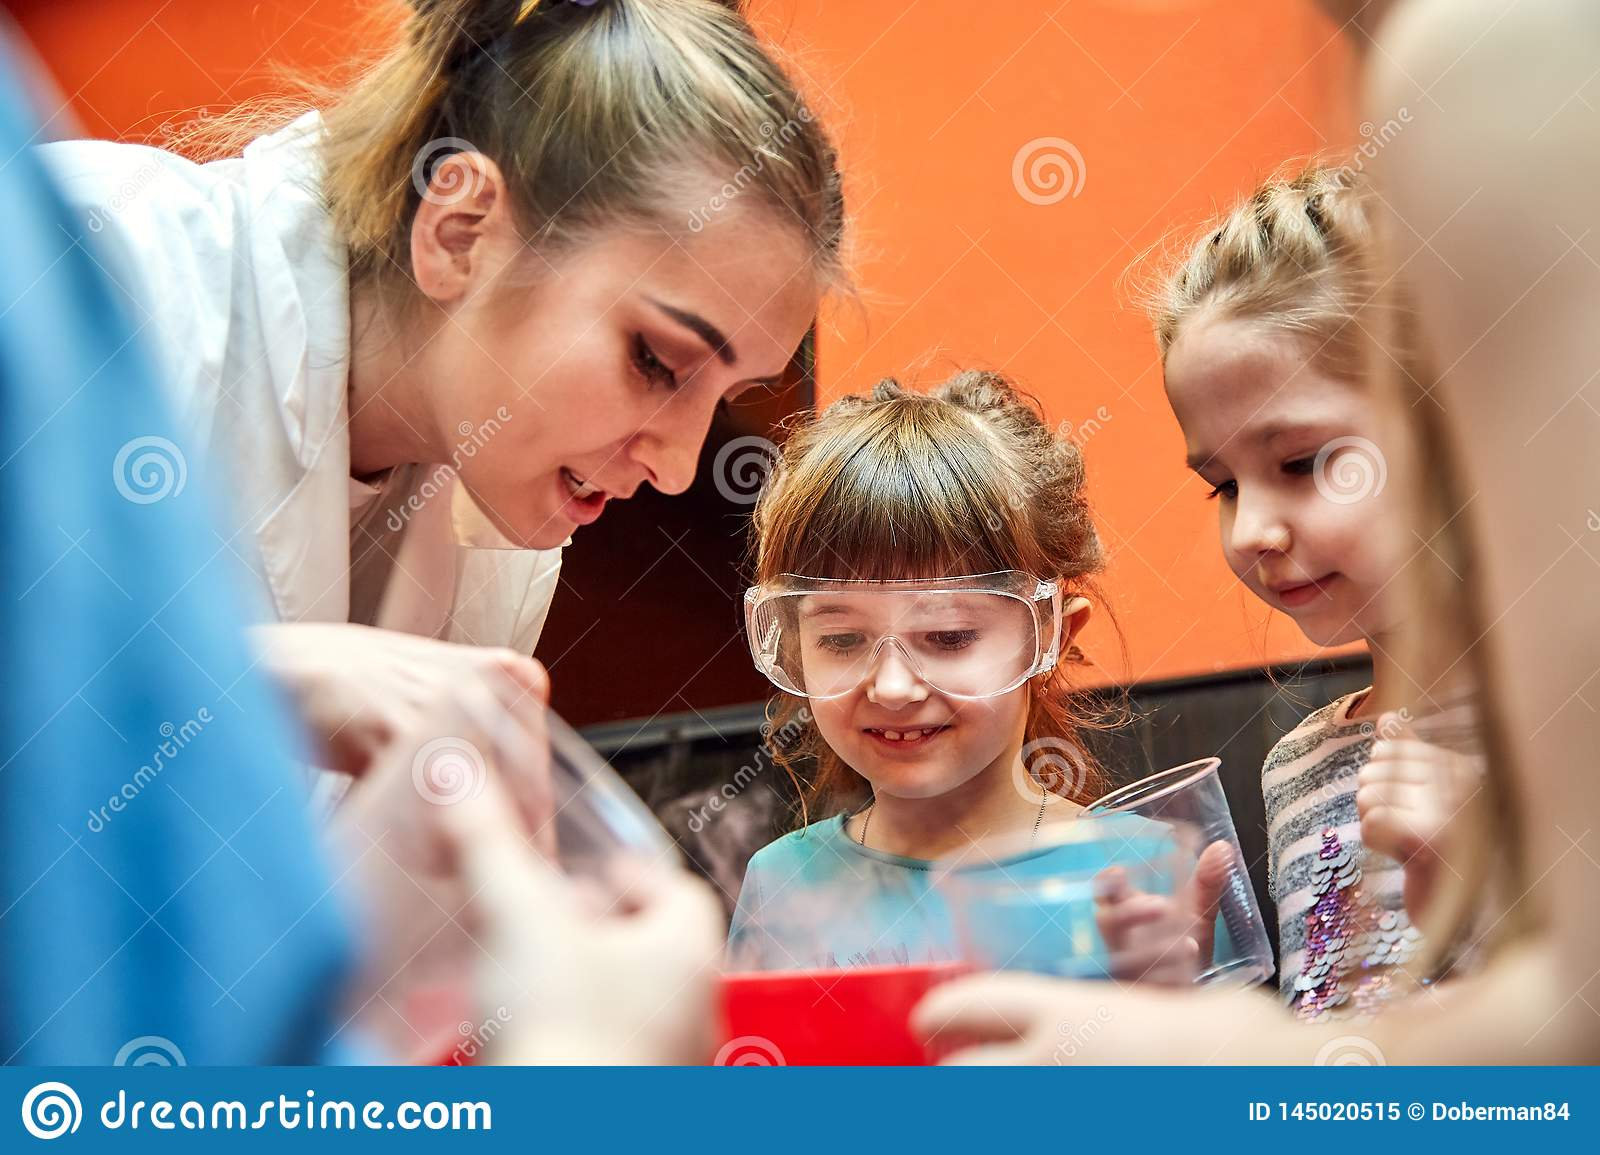 Chemical show for kids. Professor carried out chemical experiments with liquid nitrogen on Birthday little girl.